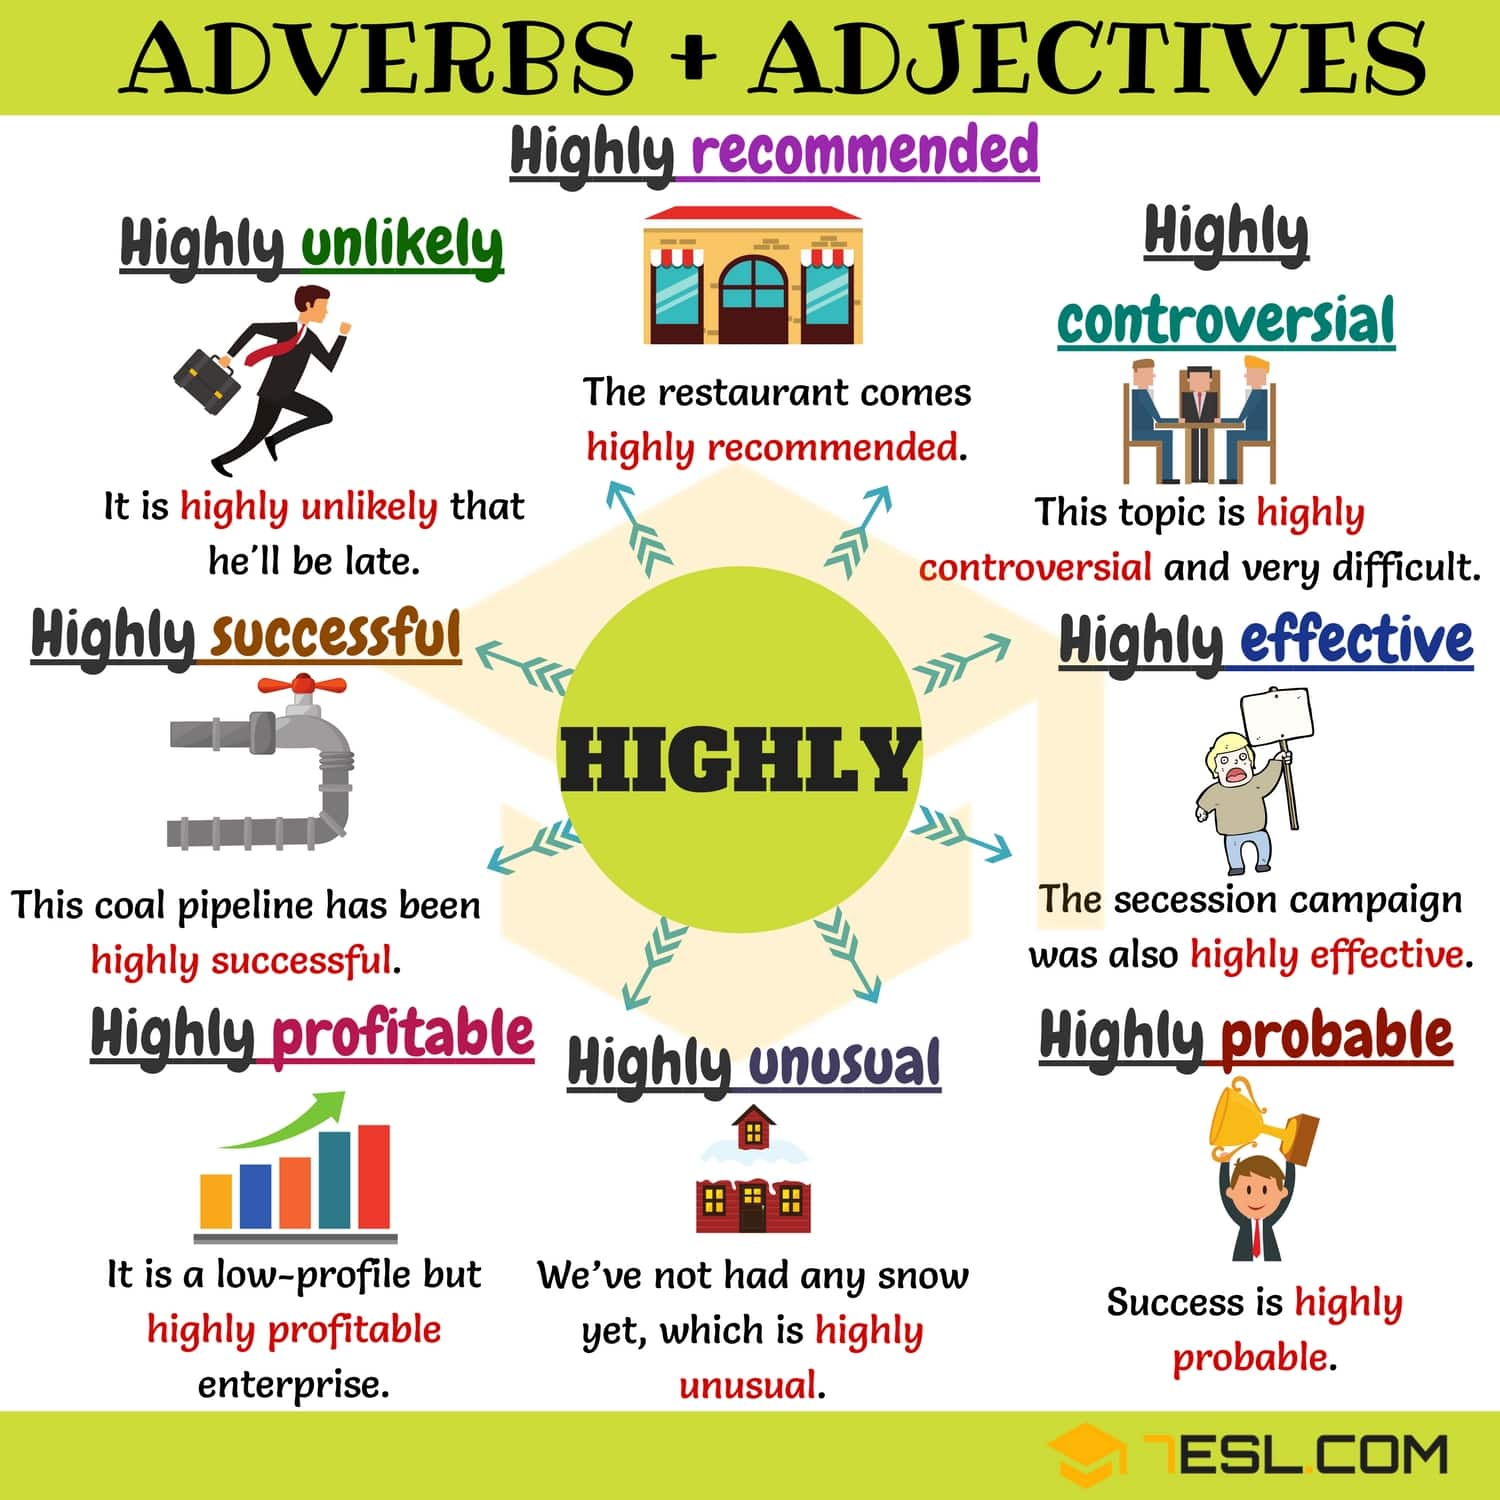 Adverbs and Adjectives: 75 Useful Adverb Adjective Collocations